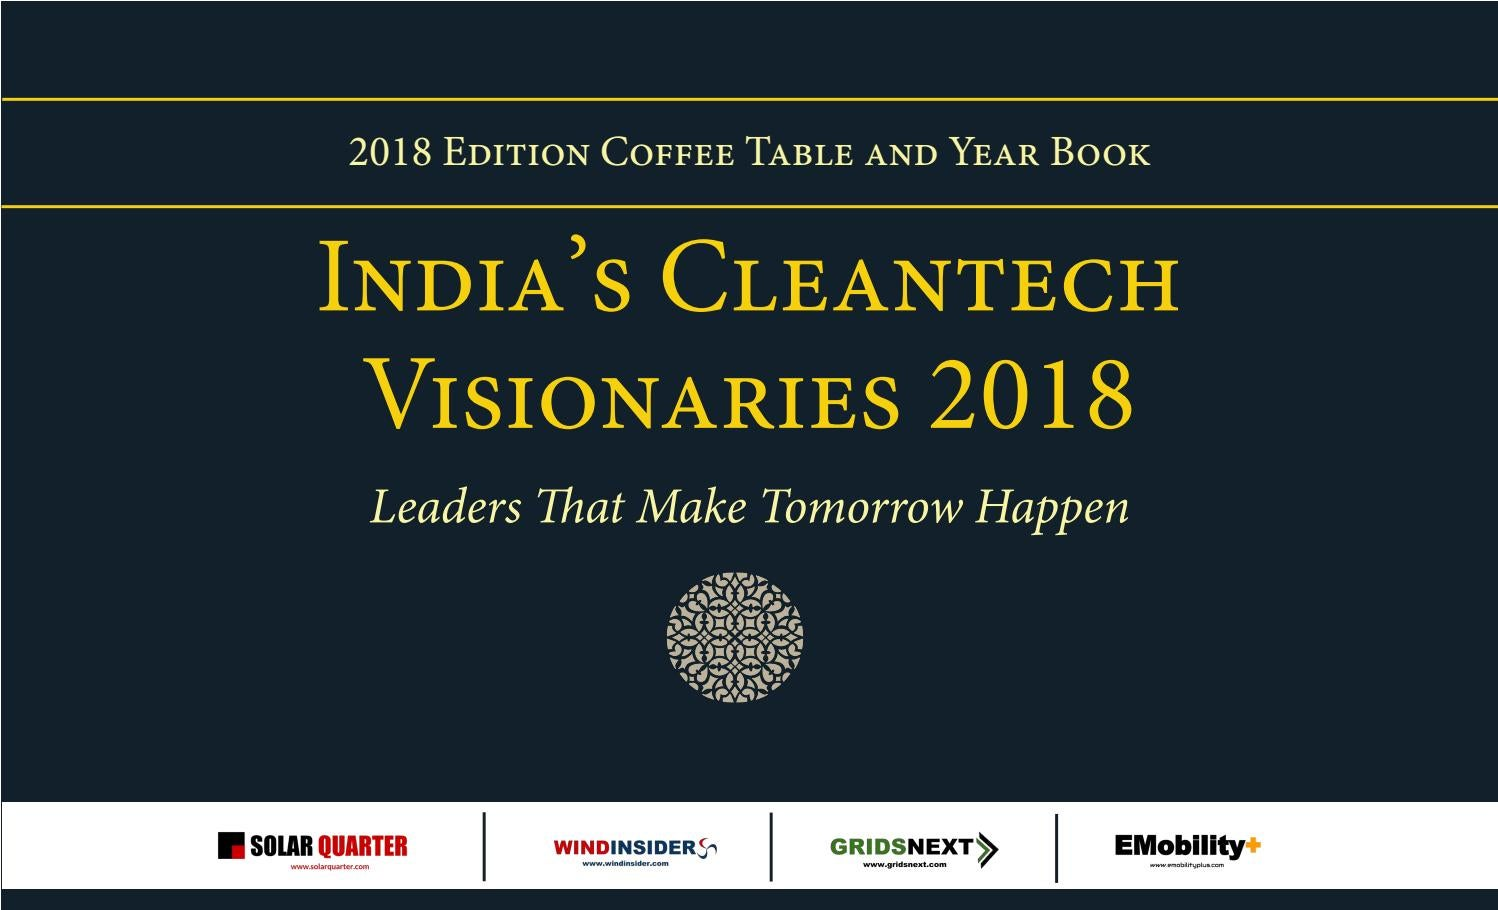 India S Cleantech Visionaries 2018 Edition Coffee Table And Year Book By Solarquarter Issuu